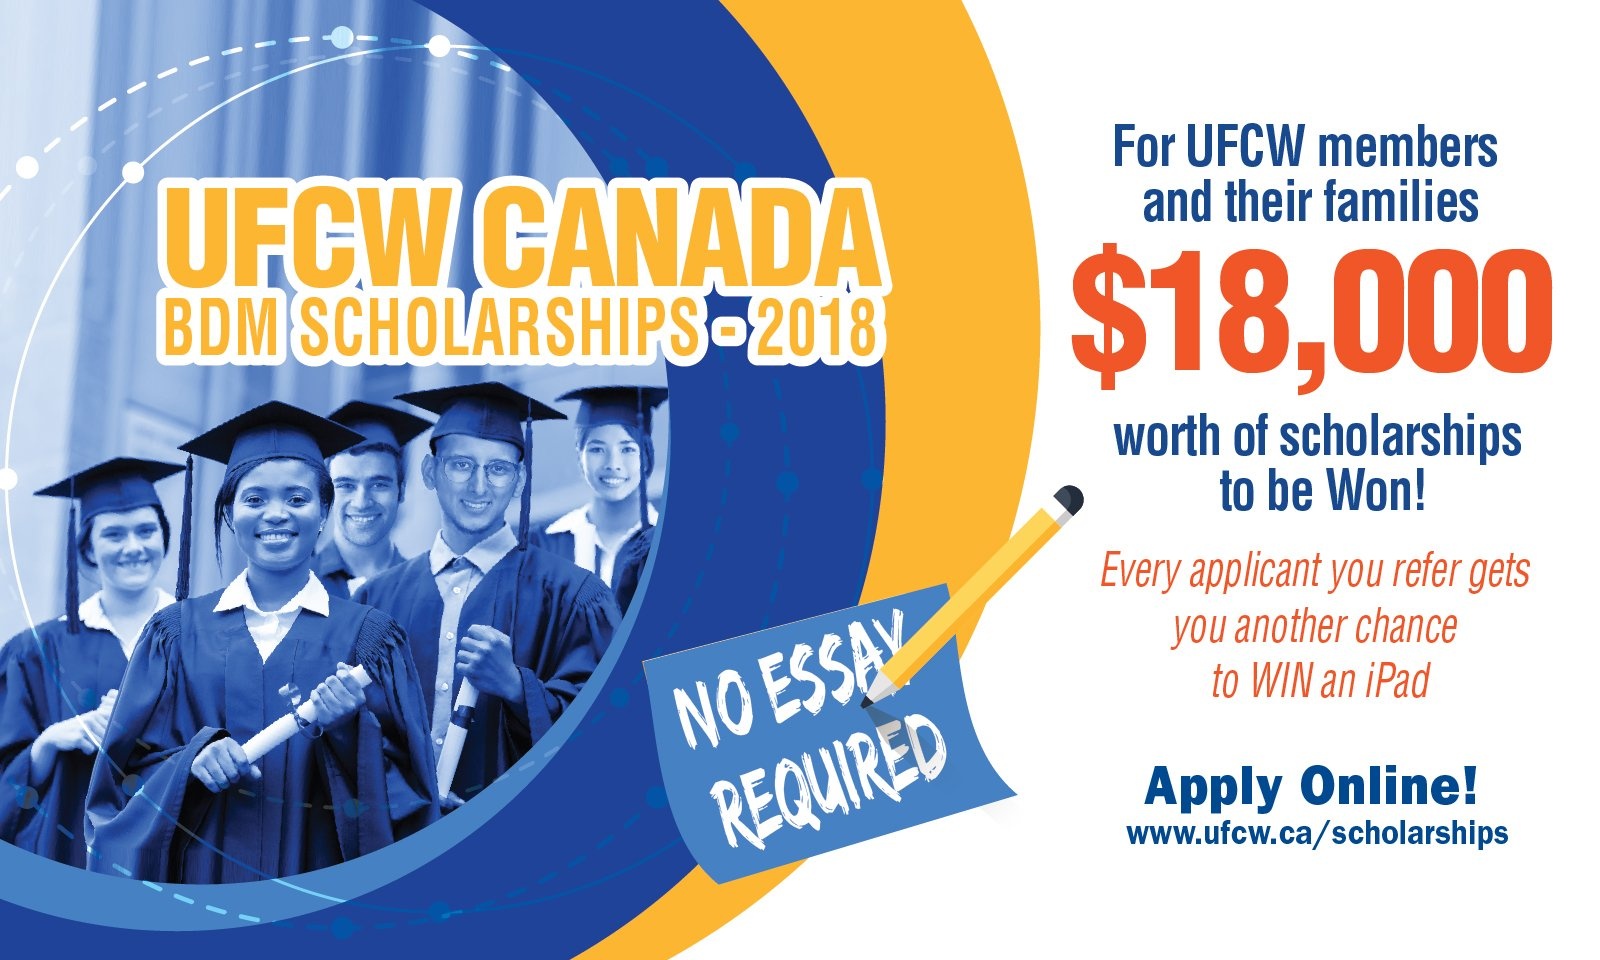 Ufcw Canada On Twitter Its Back  In Scholarships And    In Scholarships And  Apple Ipads Are Available Through Ufcw Canada   Bdm Scholarship Contest Learn More And How To Apply Here